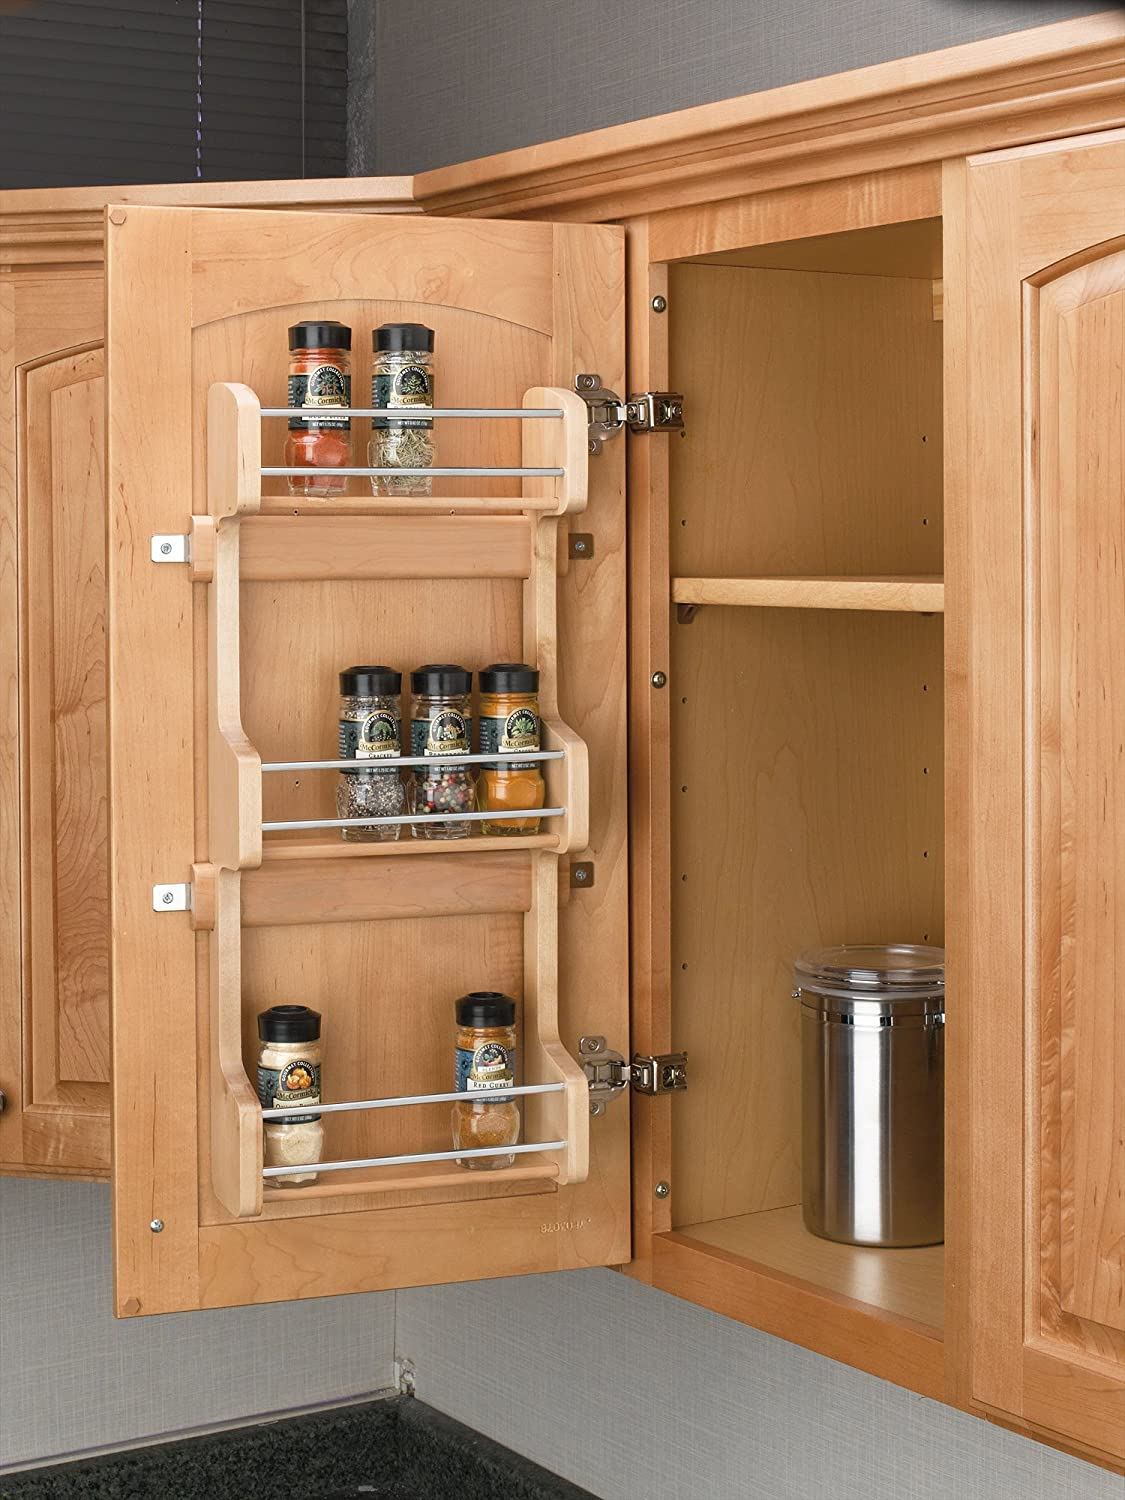 Delicieux Amazon.com   Rev A Shelf   4SR 15   Small Cabinet Door Mount Wood 3 Shelf  Spice Rack